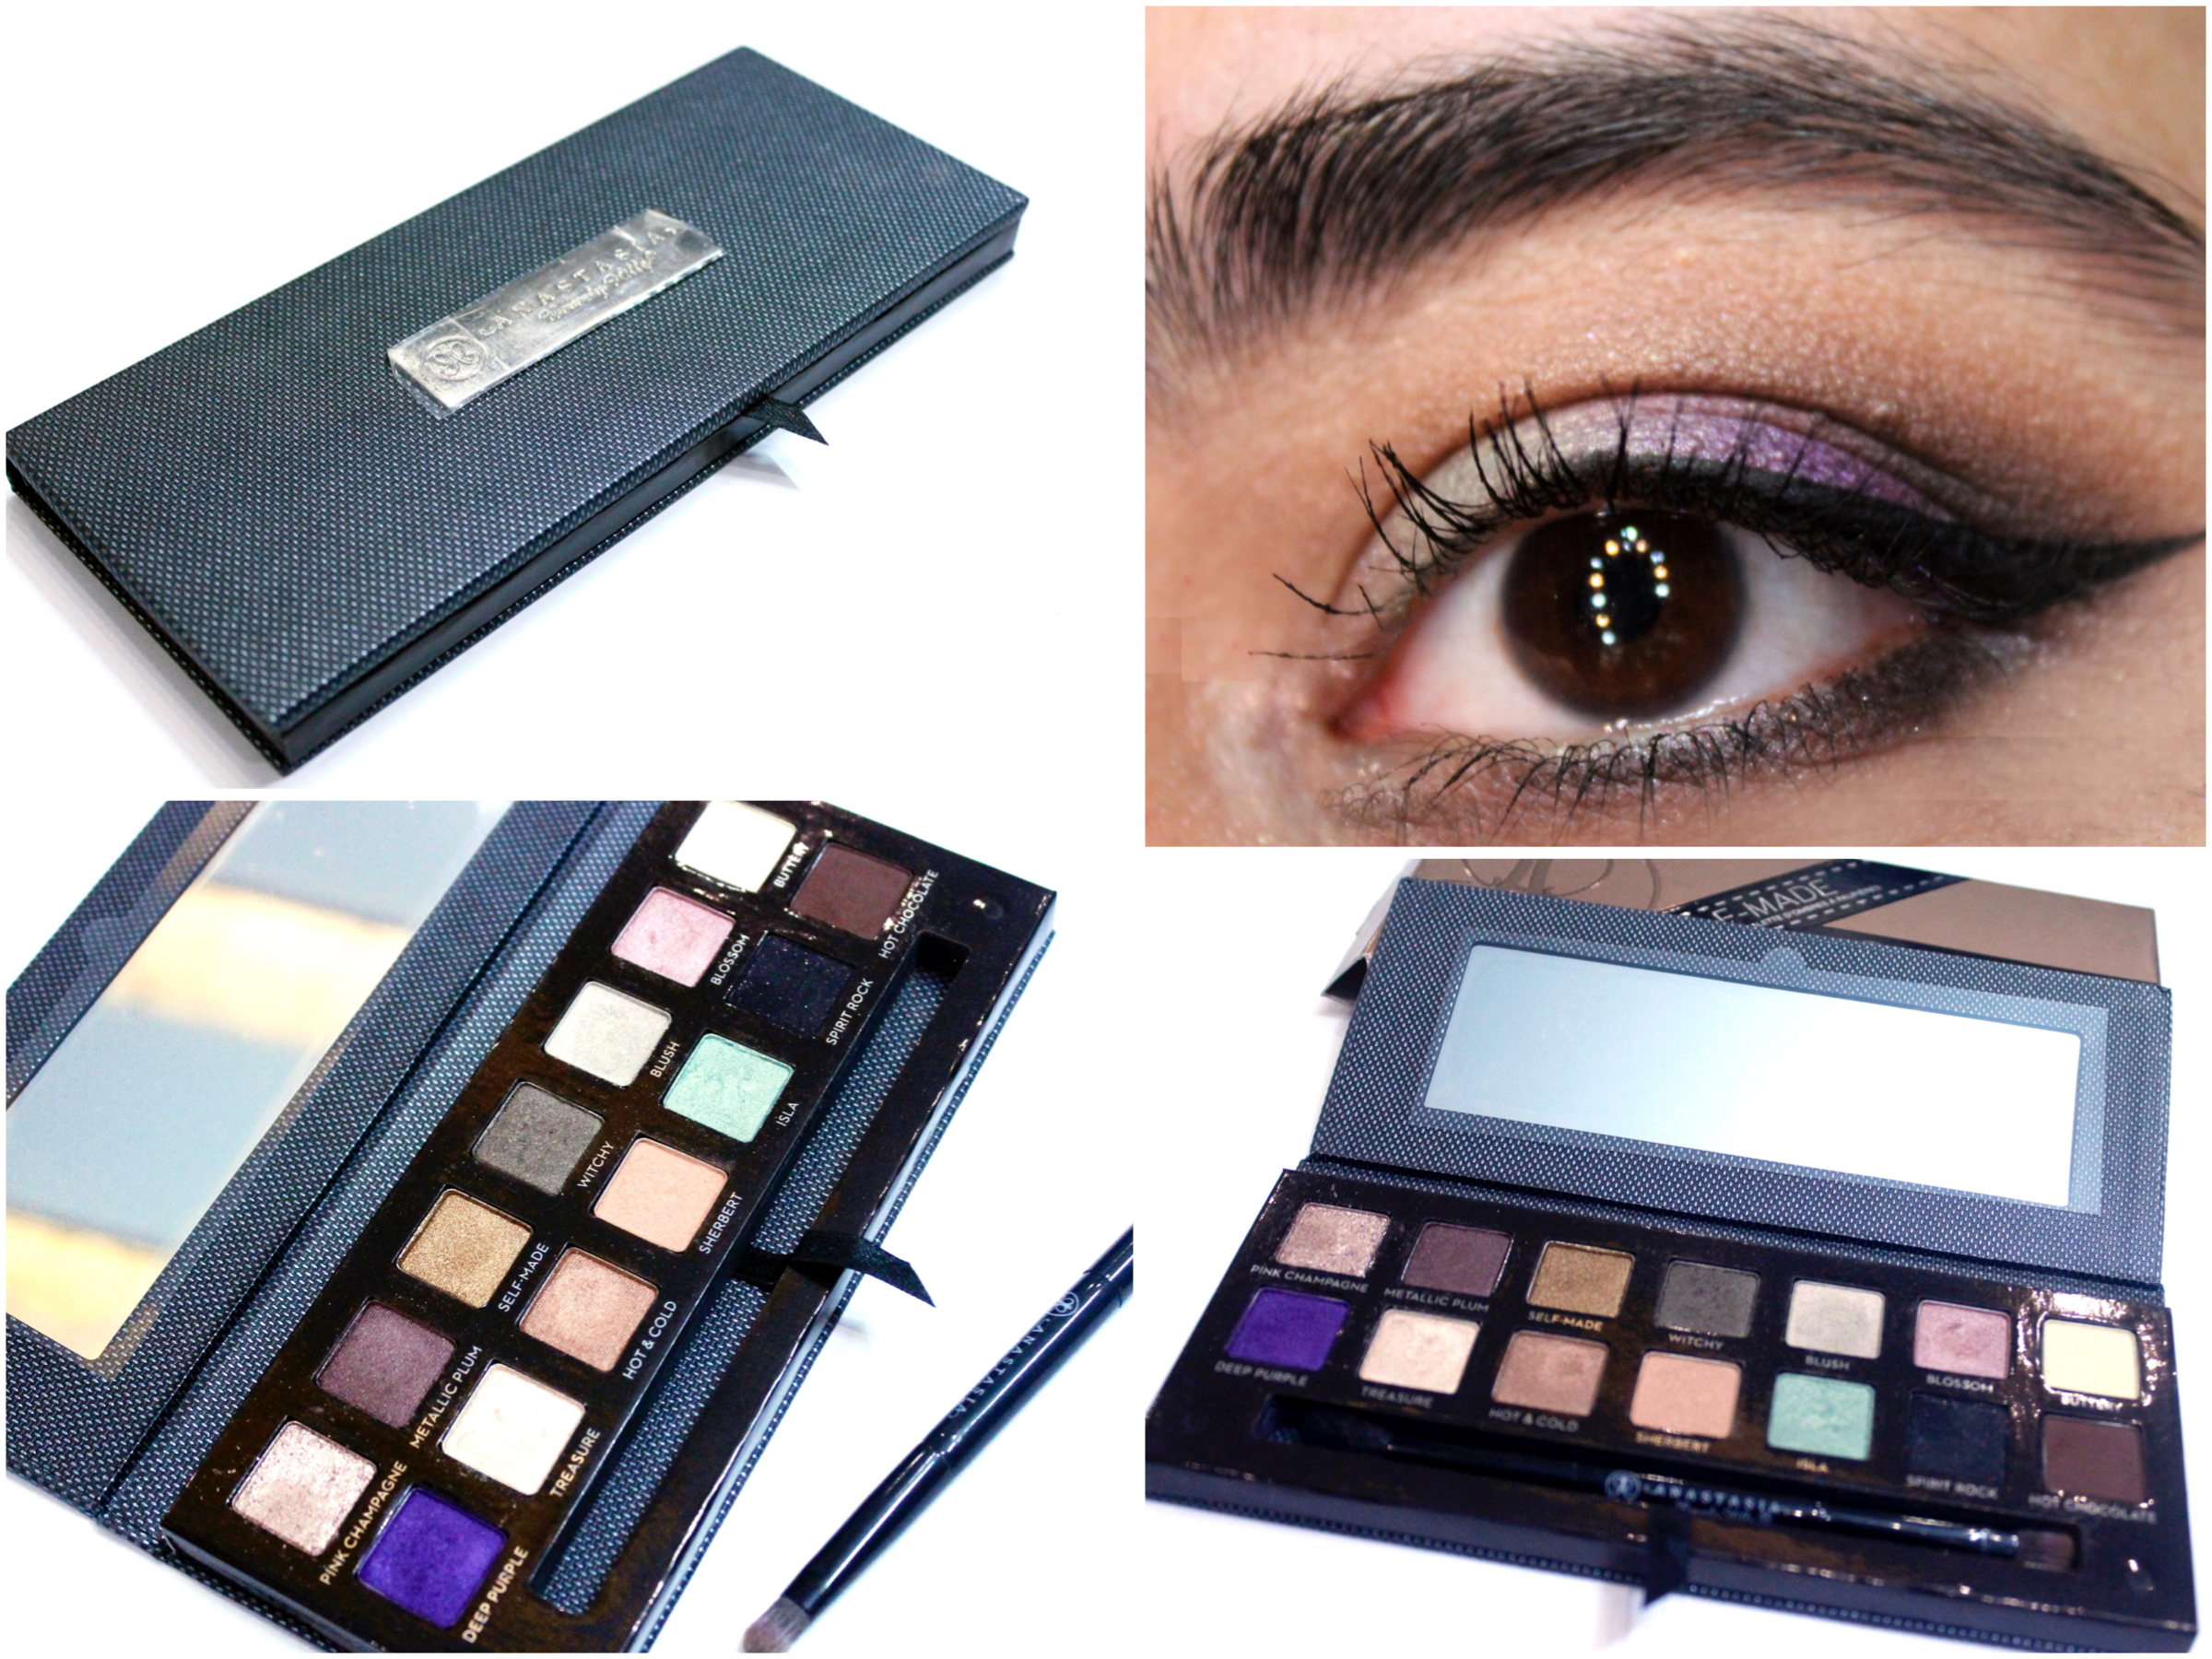 Anastasia Beverly Hills Self Made Eyeshadow Palette Review